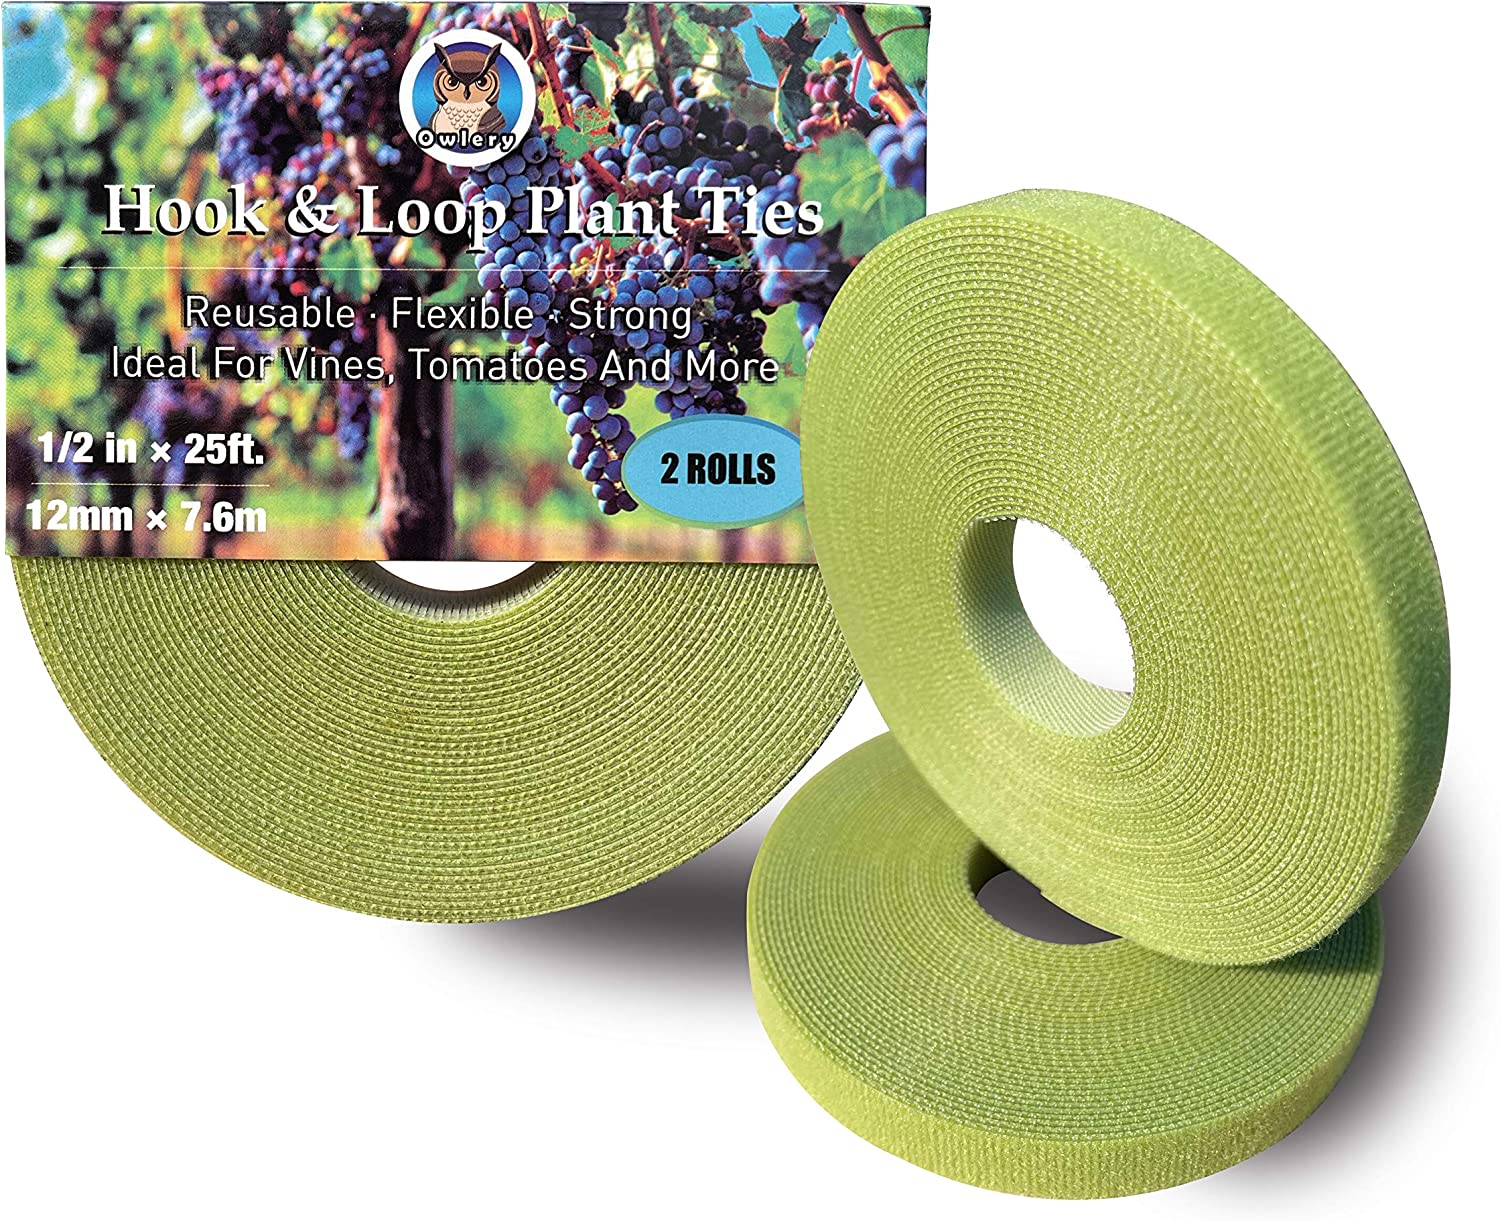 Owlery Hook and Loop Garden Tie, Reusable Nylon Plant Tie Strap, Soft Tomato Tie, Vine Tie, Garden Stake, Ideal for Garden, Orchard, Vines, Patio (1/2 in x 25 ft x 2 roll)